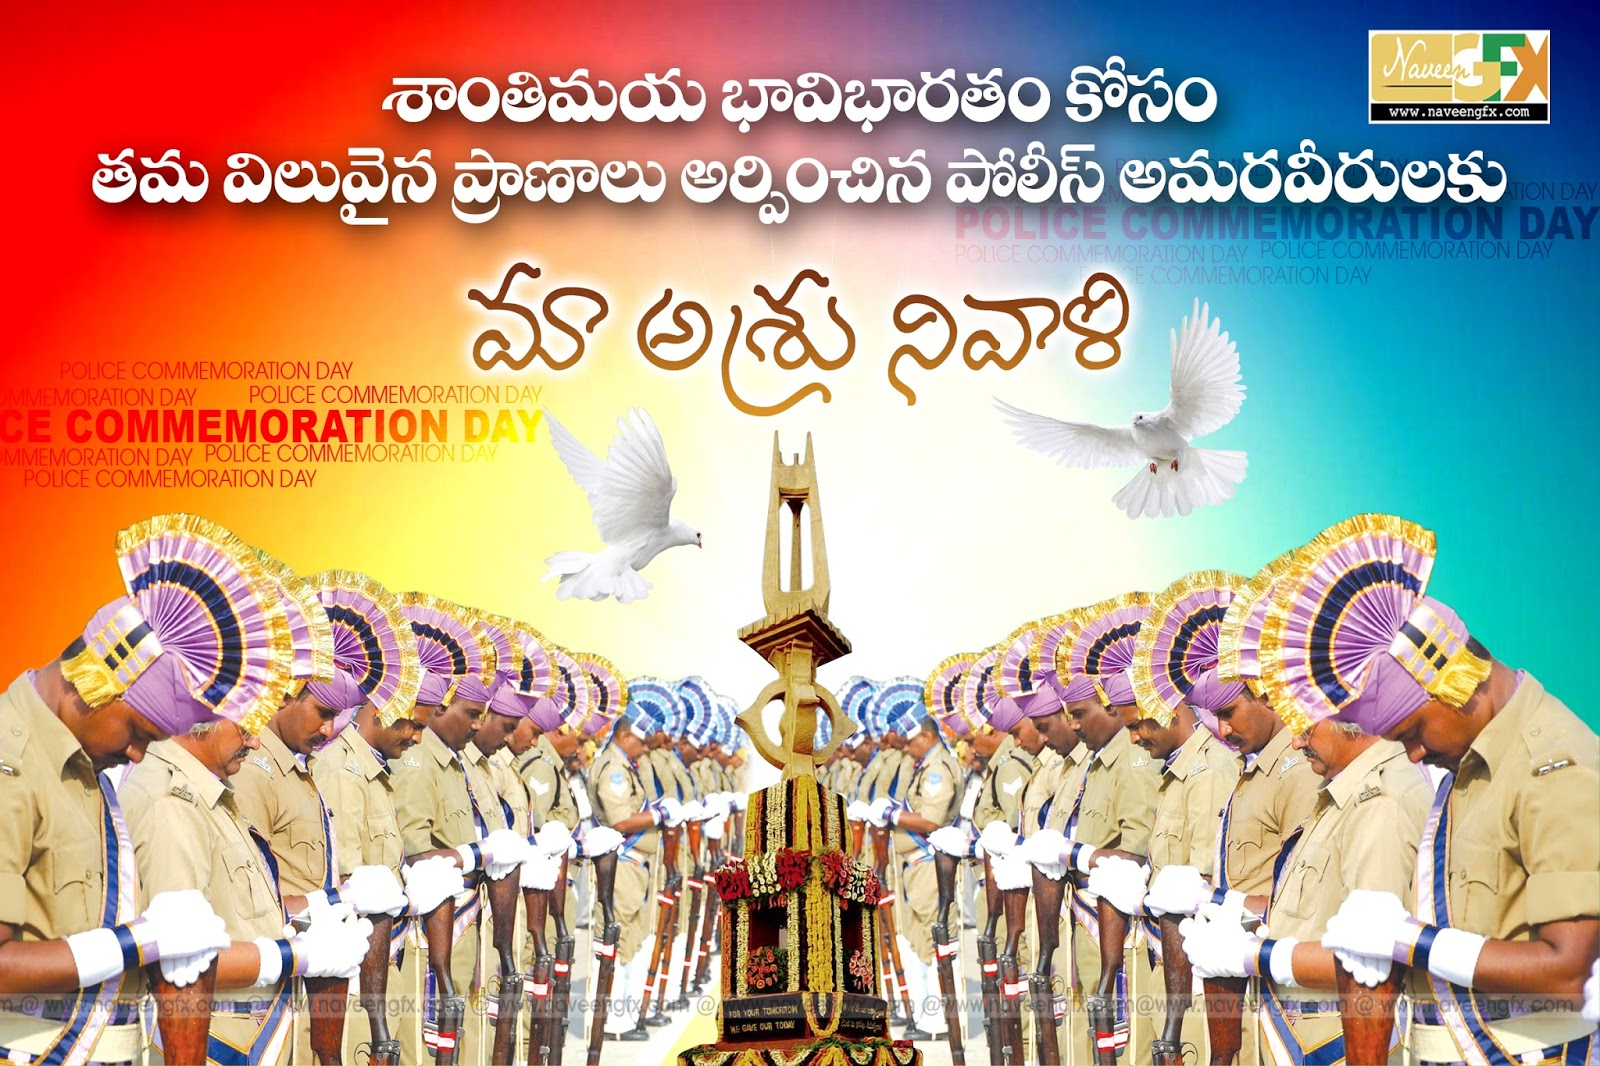 Police Commemoration Day Telugu Slogans And Posters